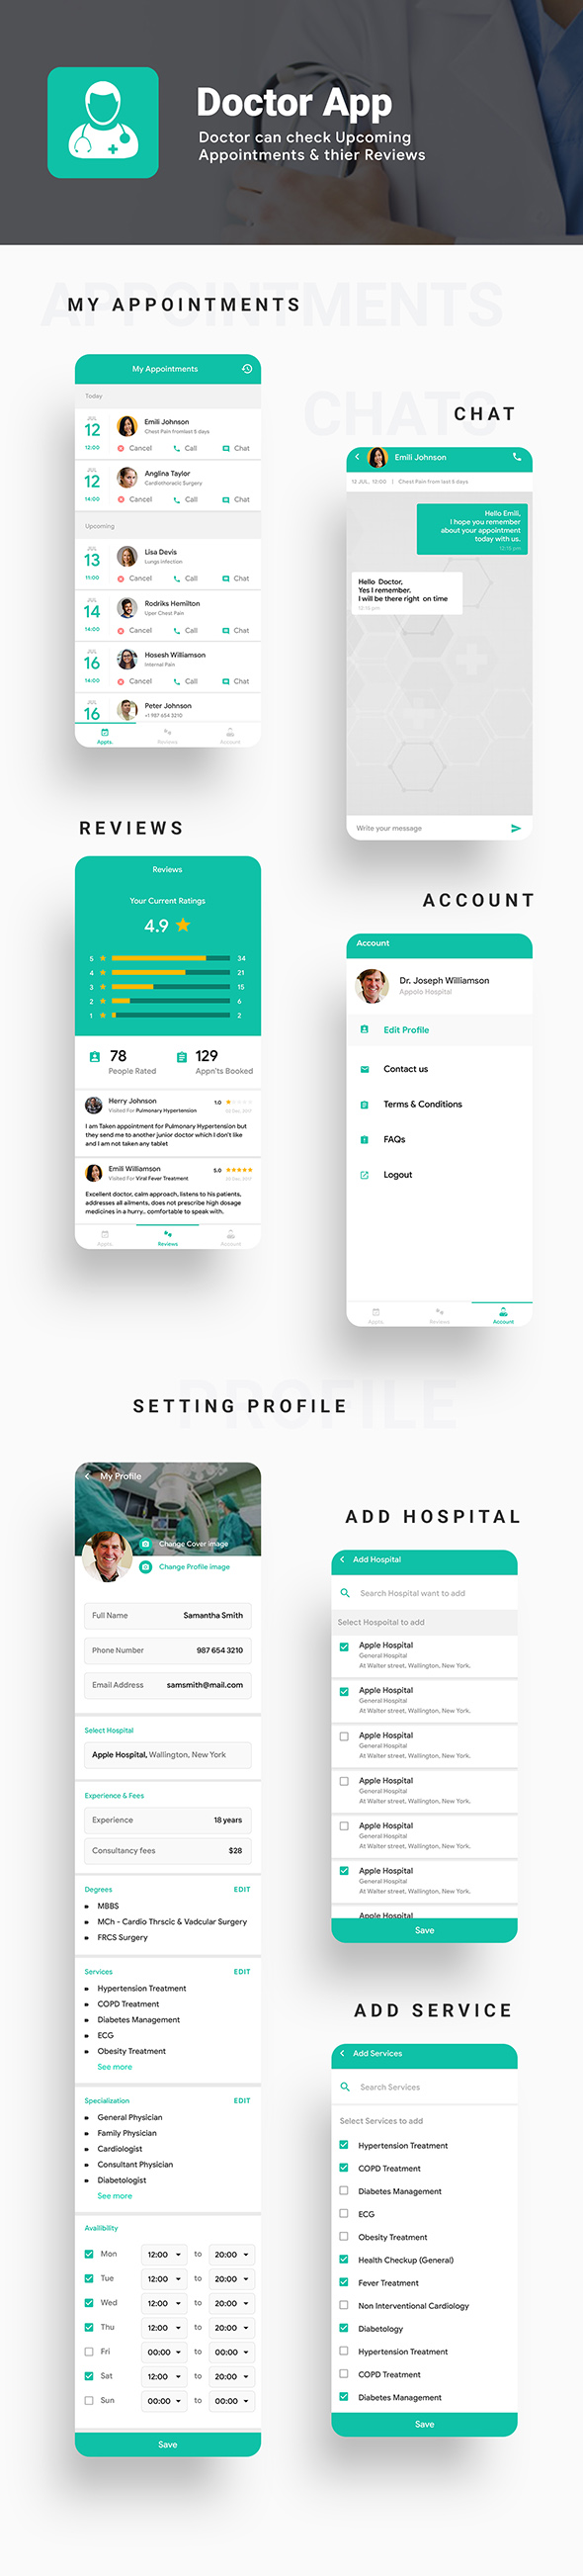 All in one Doctor App Solution Template Android + iOS (HMTL + Css) IONIC 5 | DoctoWorld - 4